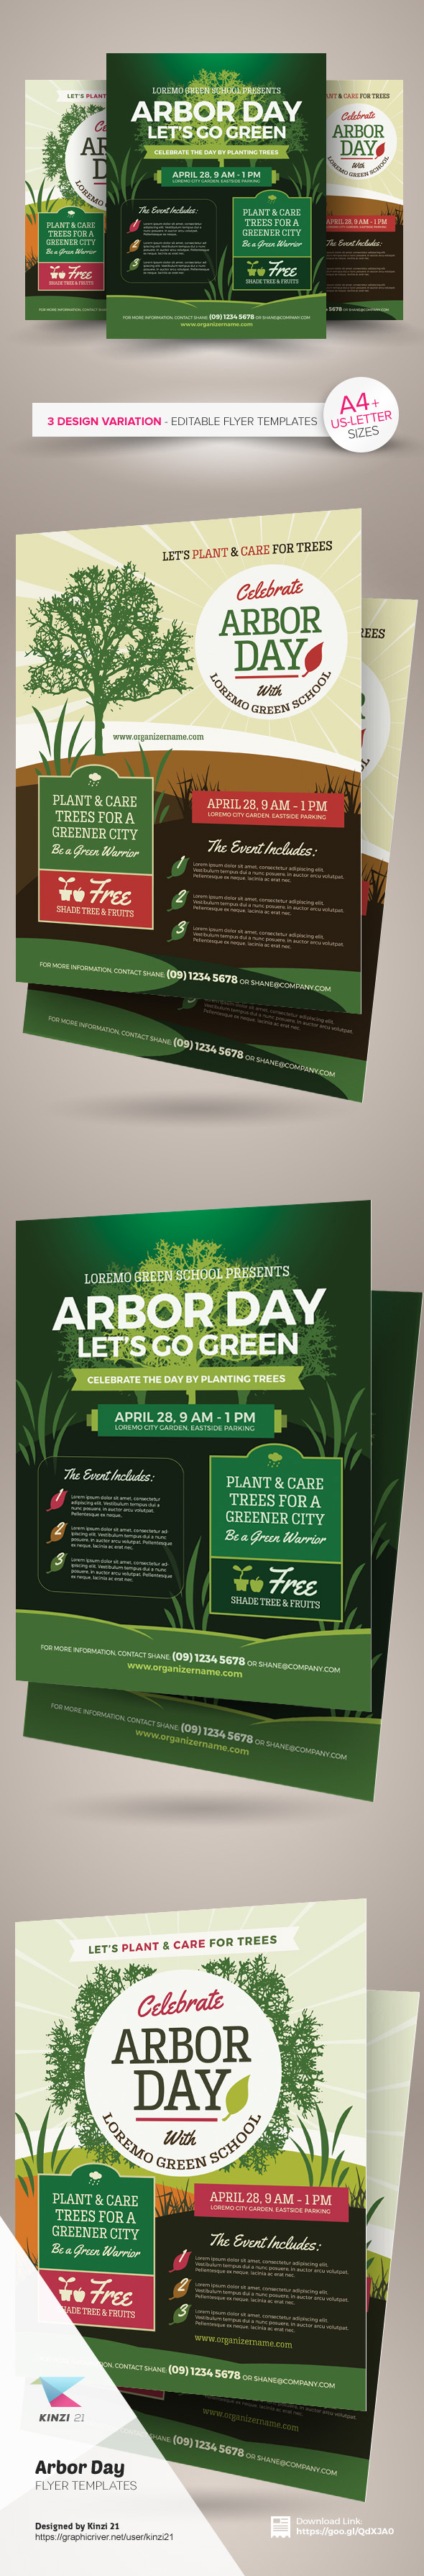 arbor day flyer templates on behance arbor day flyer templates are fully editable design templates created for on graphic river more info of the templates and how to get the sourcefile